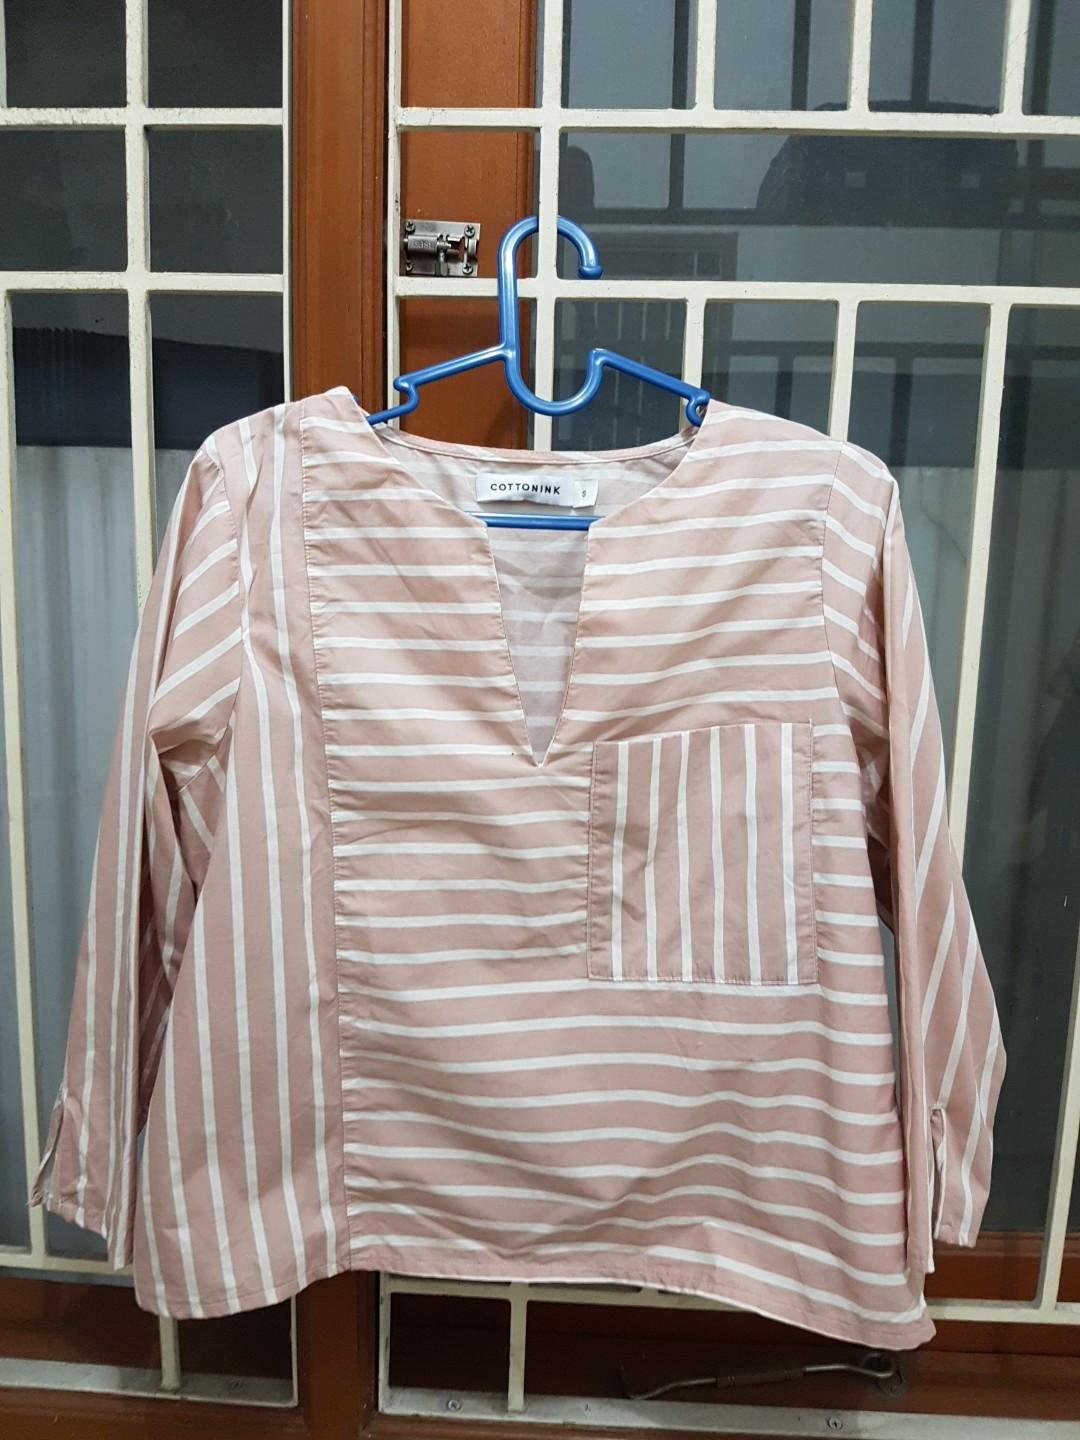 Cottonink blouse